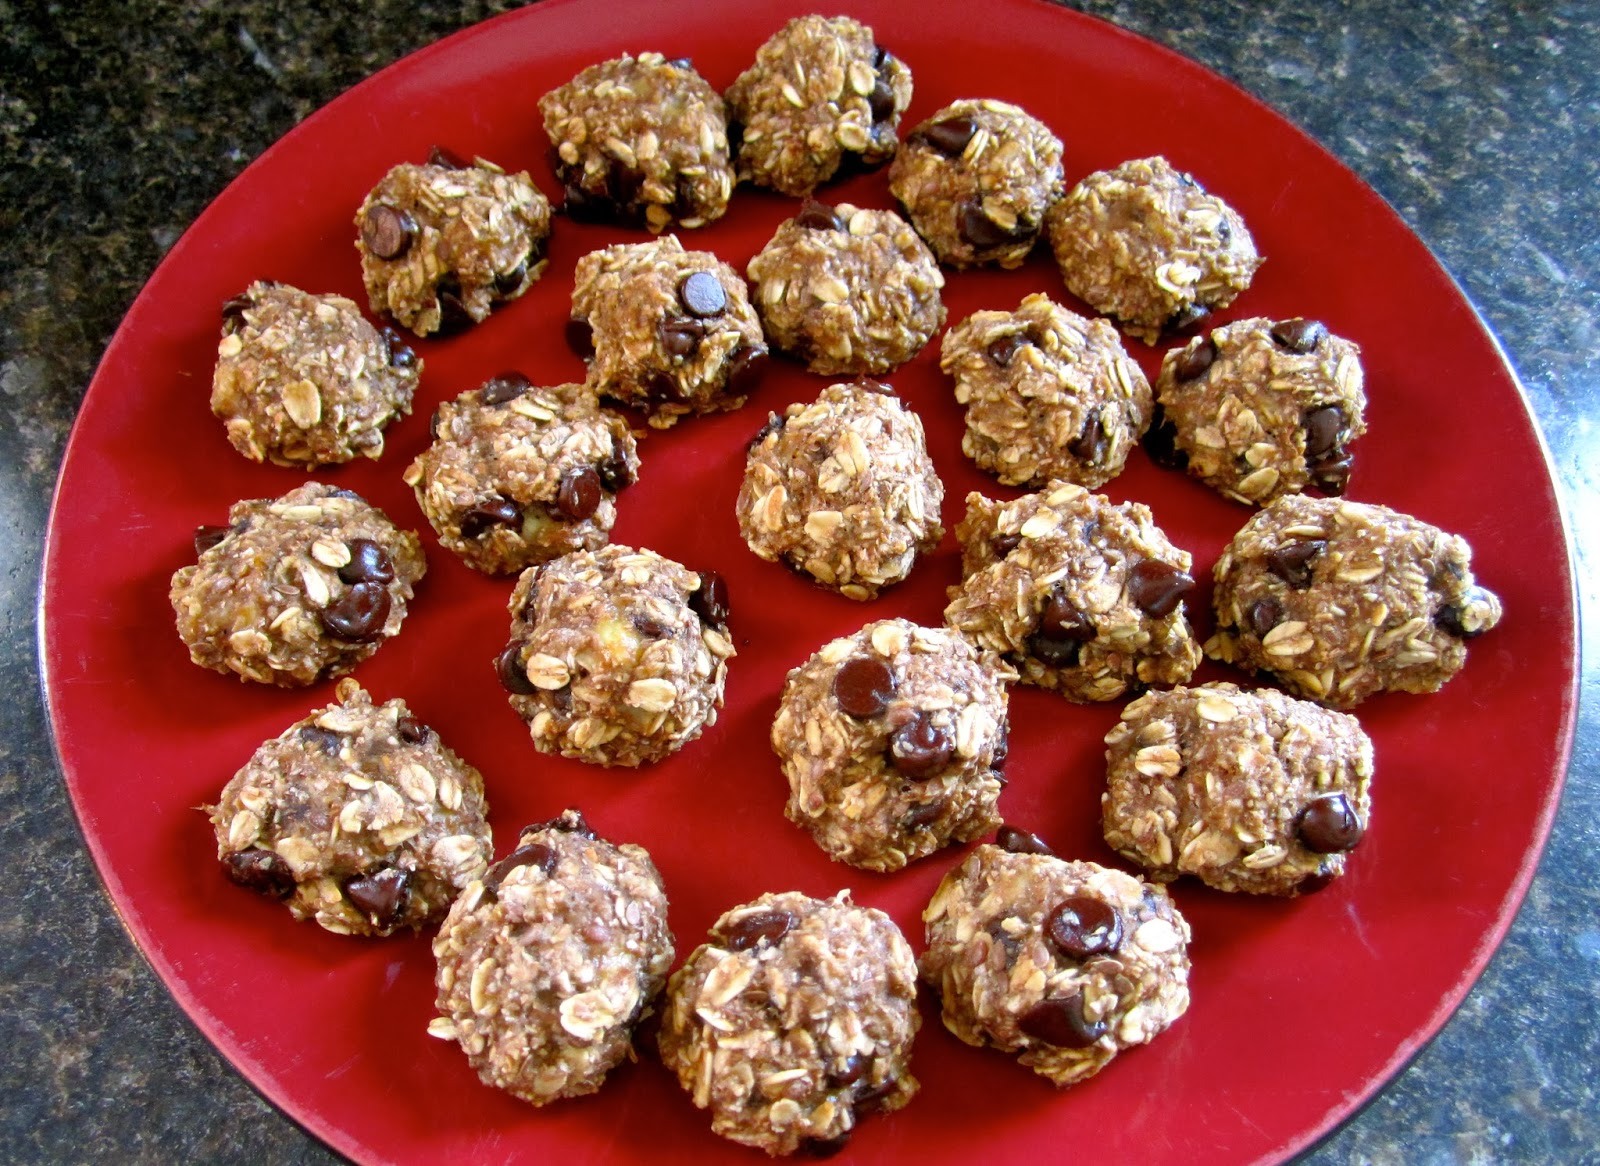 food, three ingredient recipes, 3 ingredient recipes, 3 ingredient banana oatmeal chocolate chip bites, kids' recipes, school snacks, baking, cookies, healthy cookies, bananas